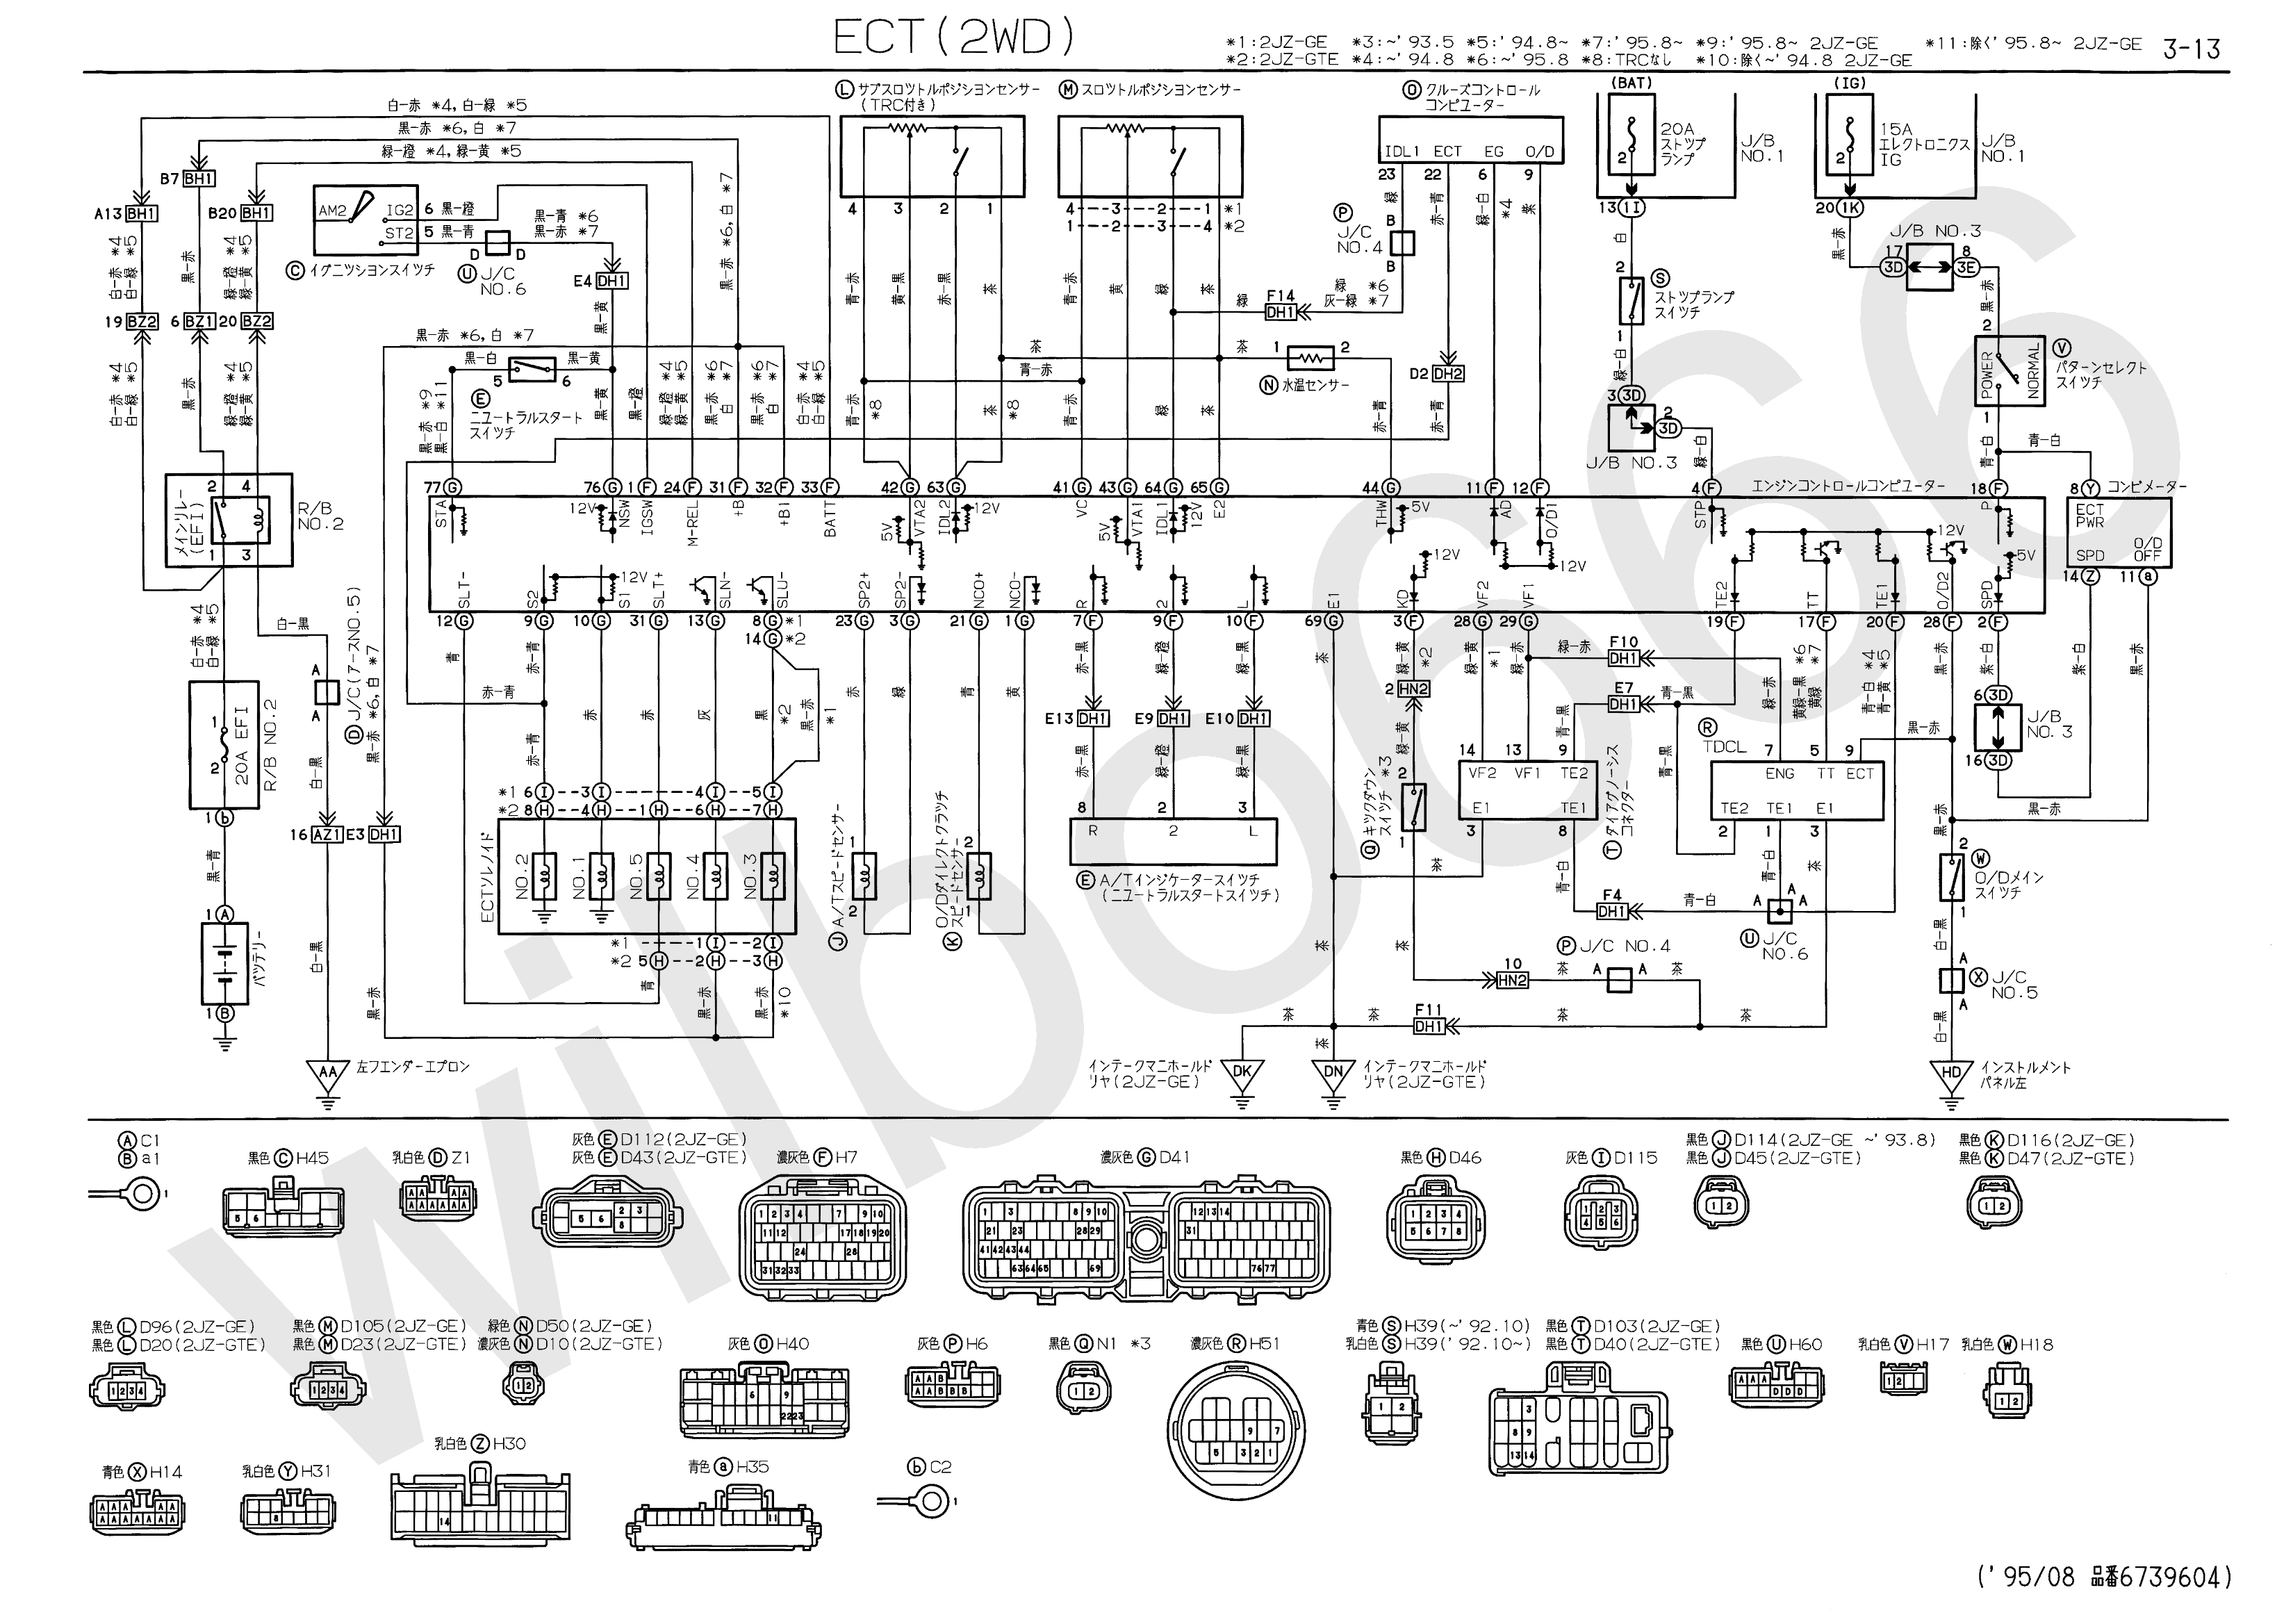 1996 Infiniti I30 Wiring Diagram 32 Images Nissan V6 3000 Engine Jzs14232c Uzs1423 Electrical